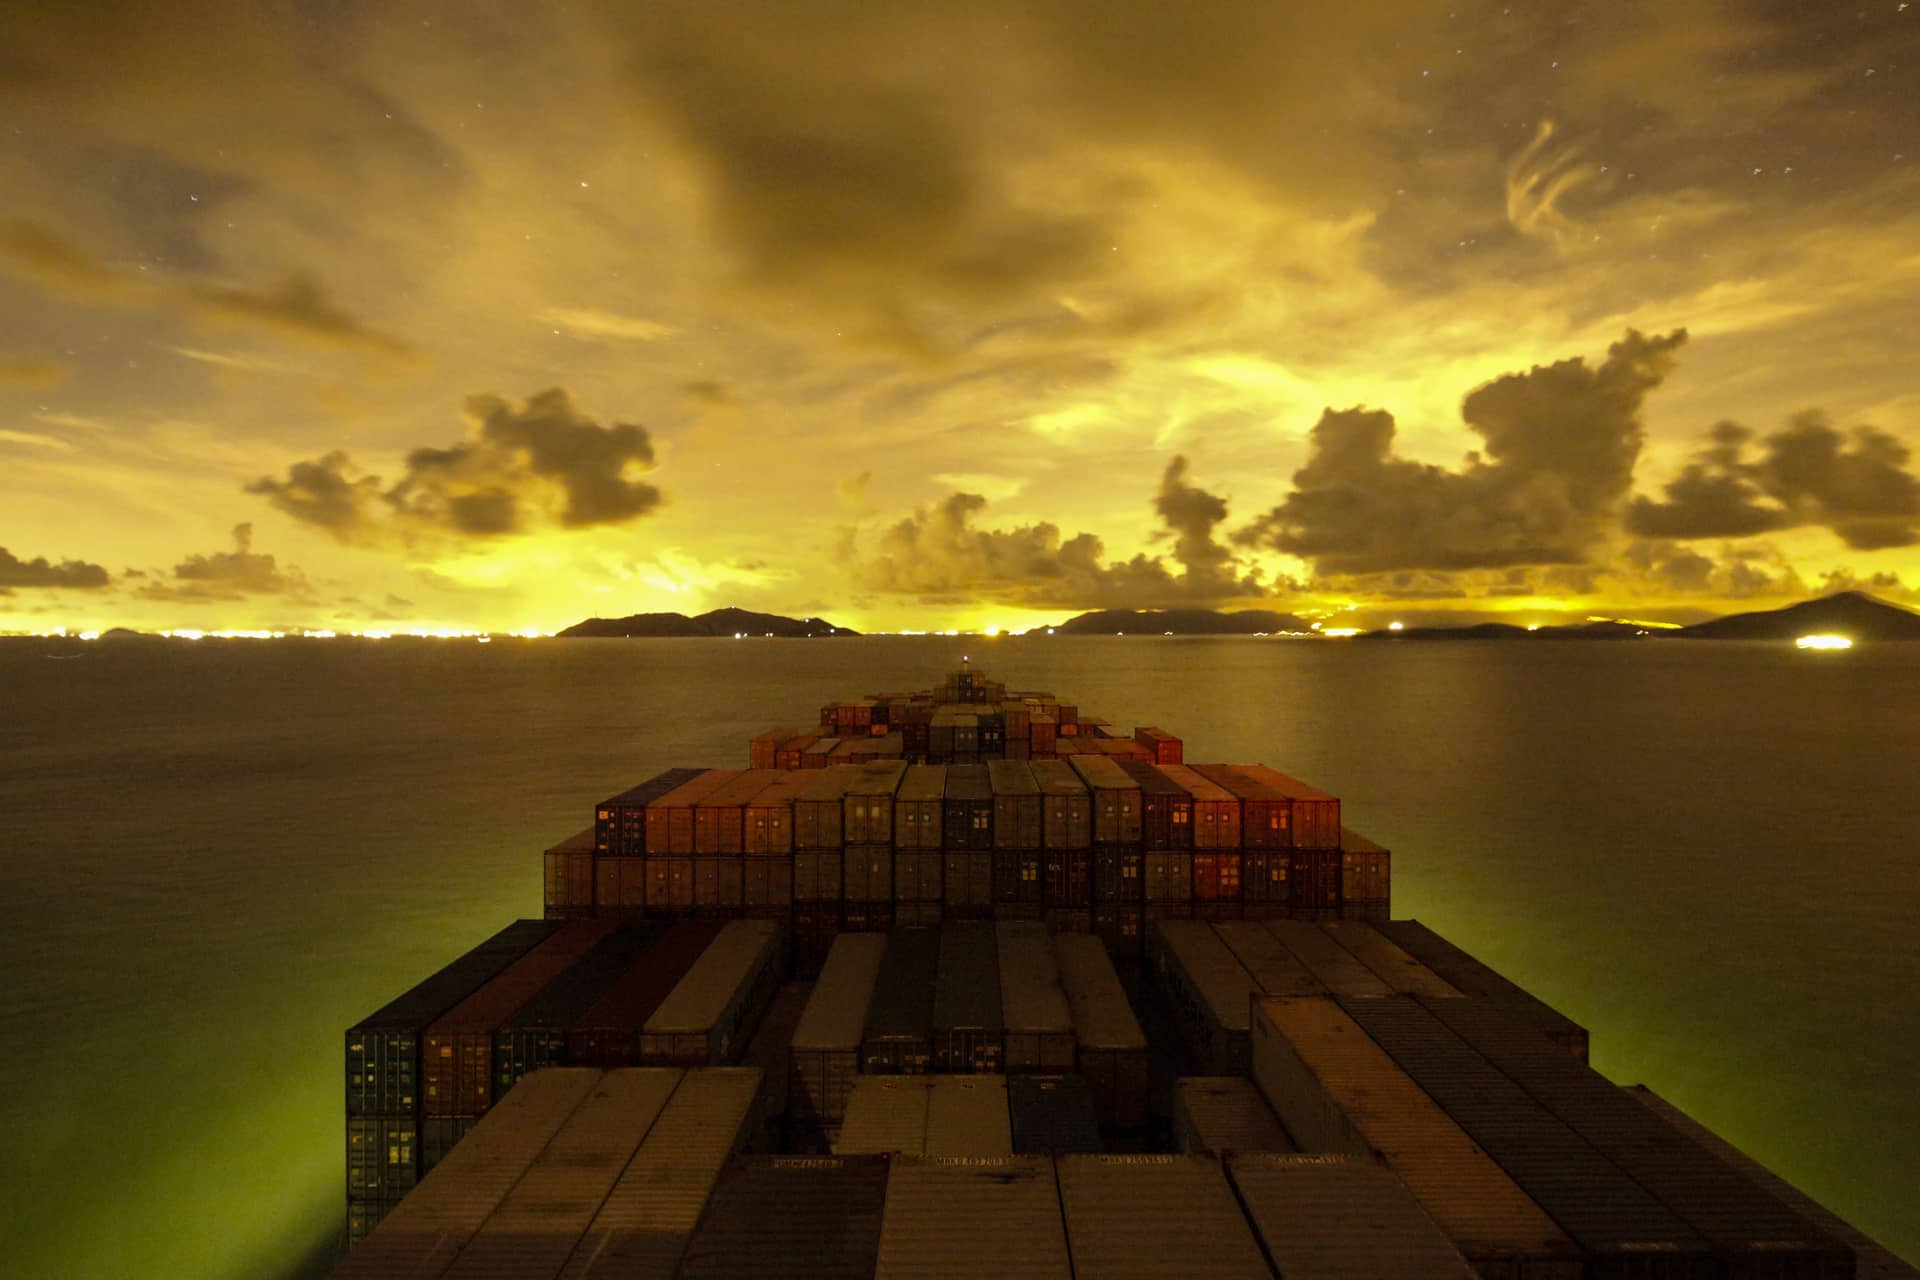 NANSHA CONTAINER PORT,  CHINA – JULY 26, 2014